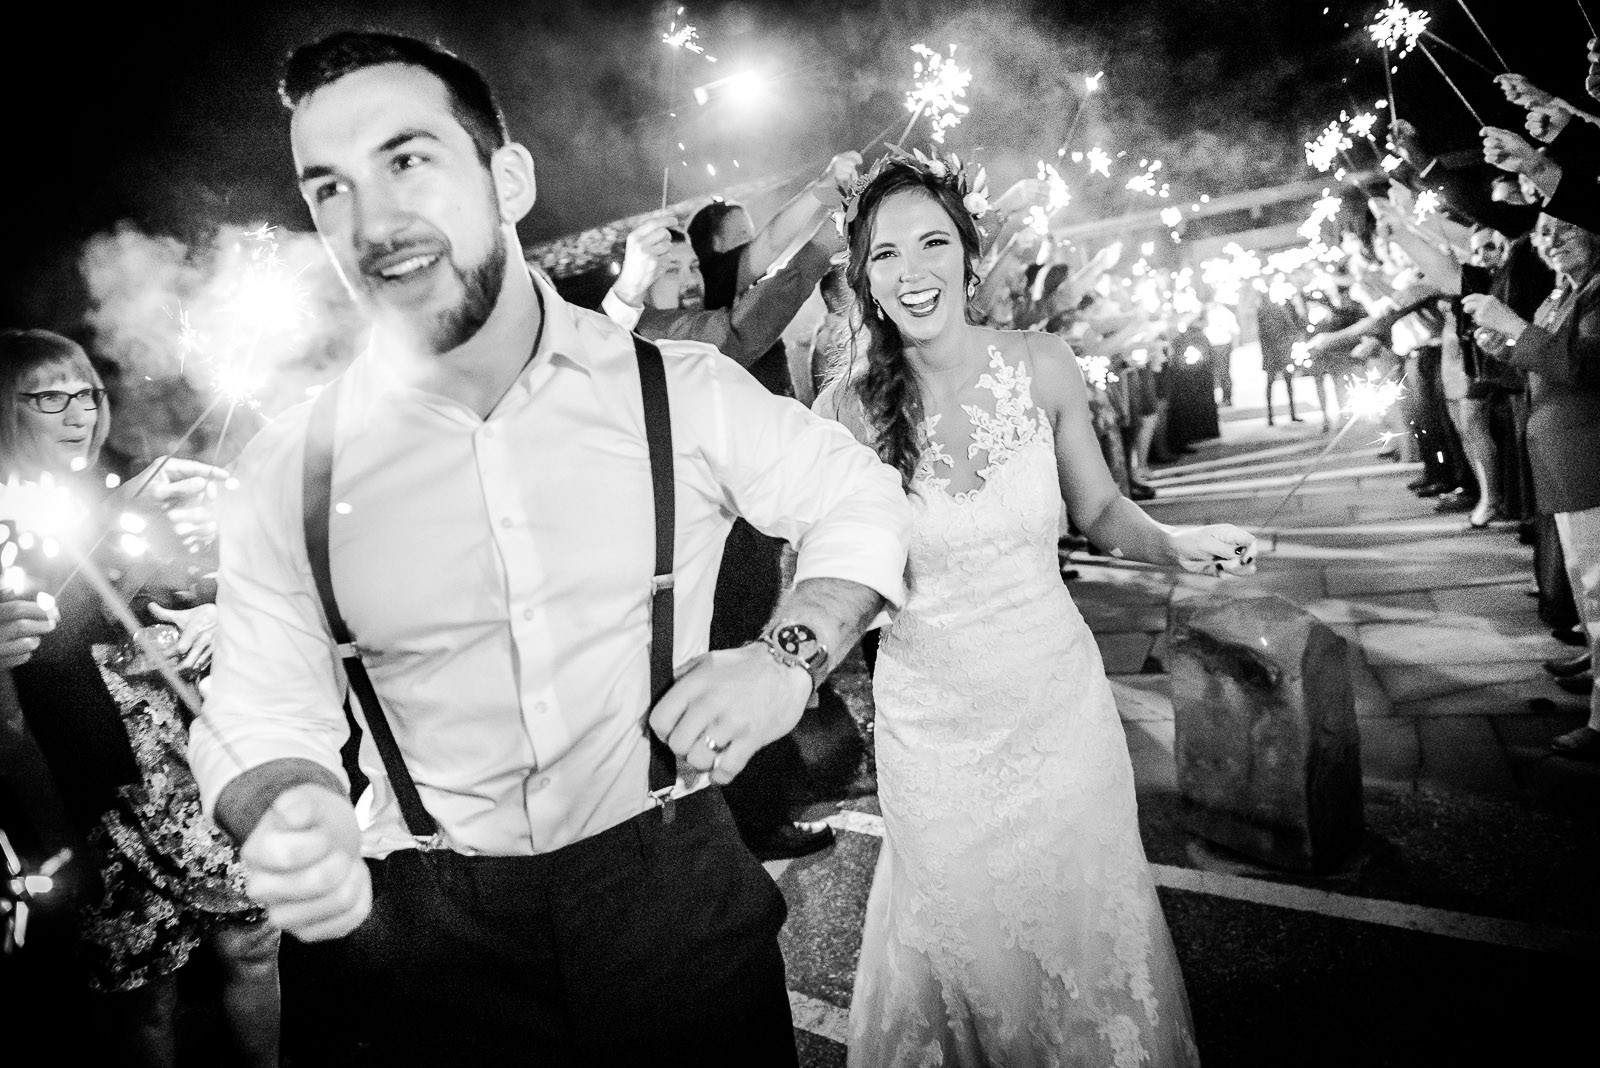 Eric_and_Christy_Photography_Blog_Stephanie_Nick_Wedding-114